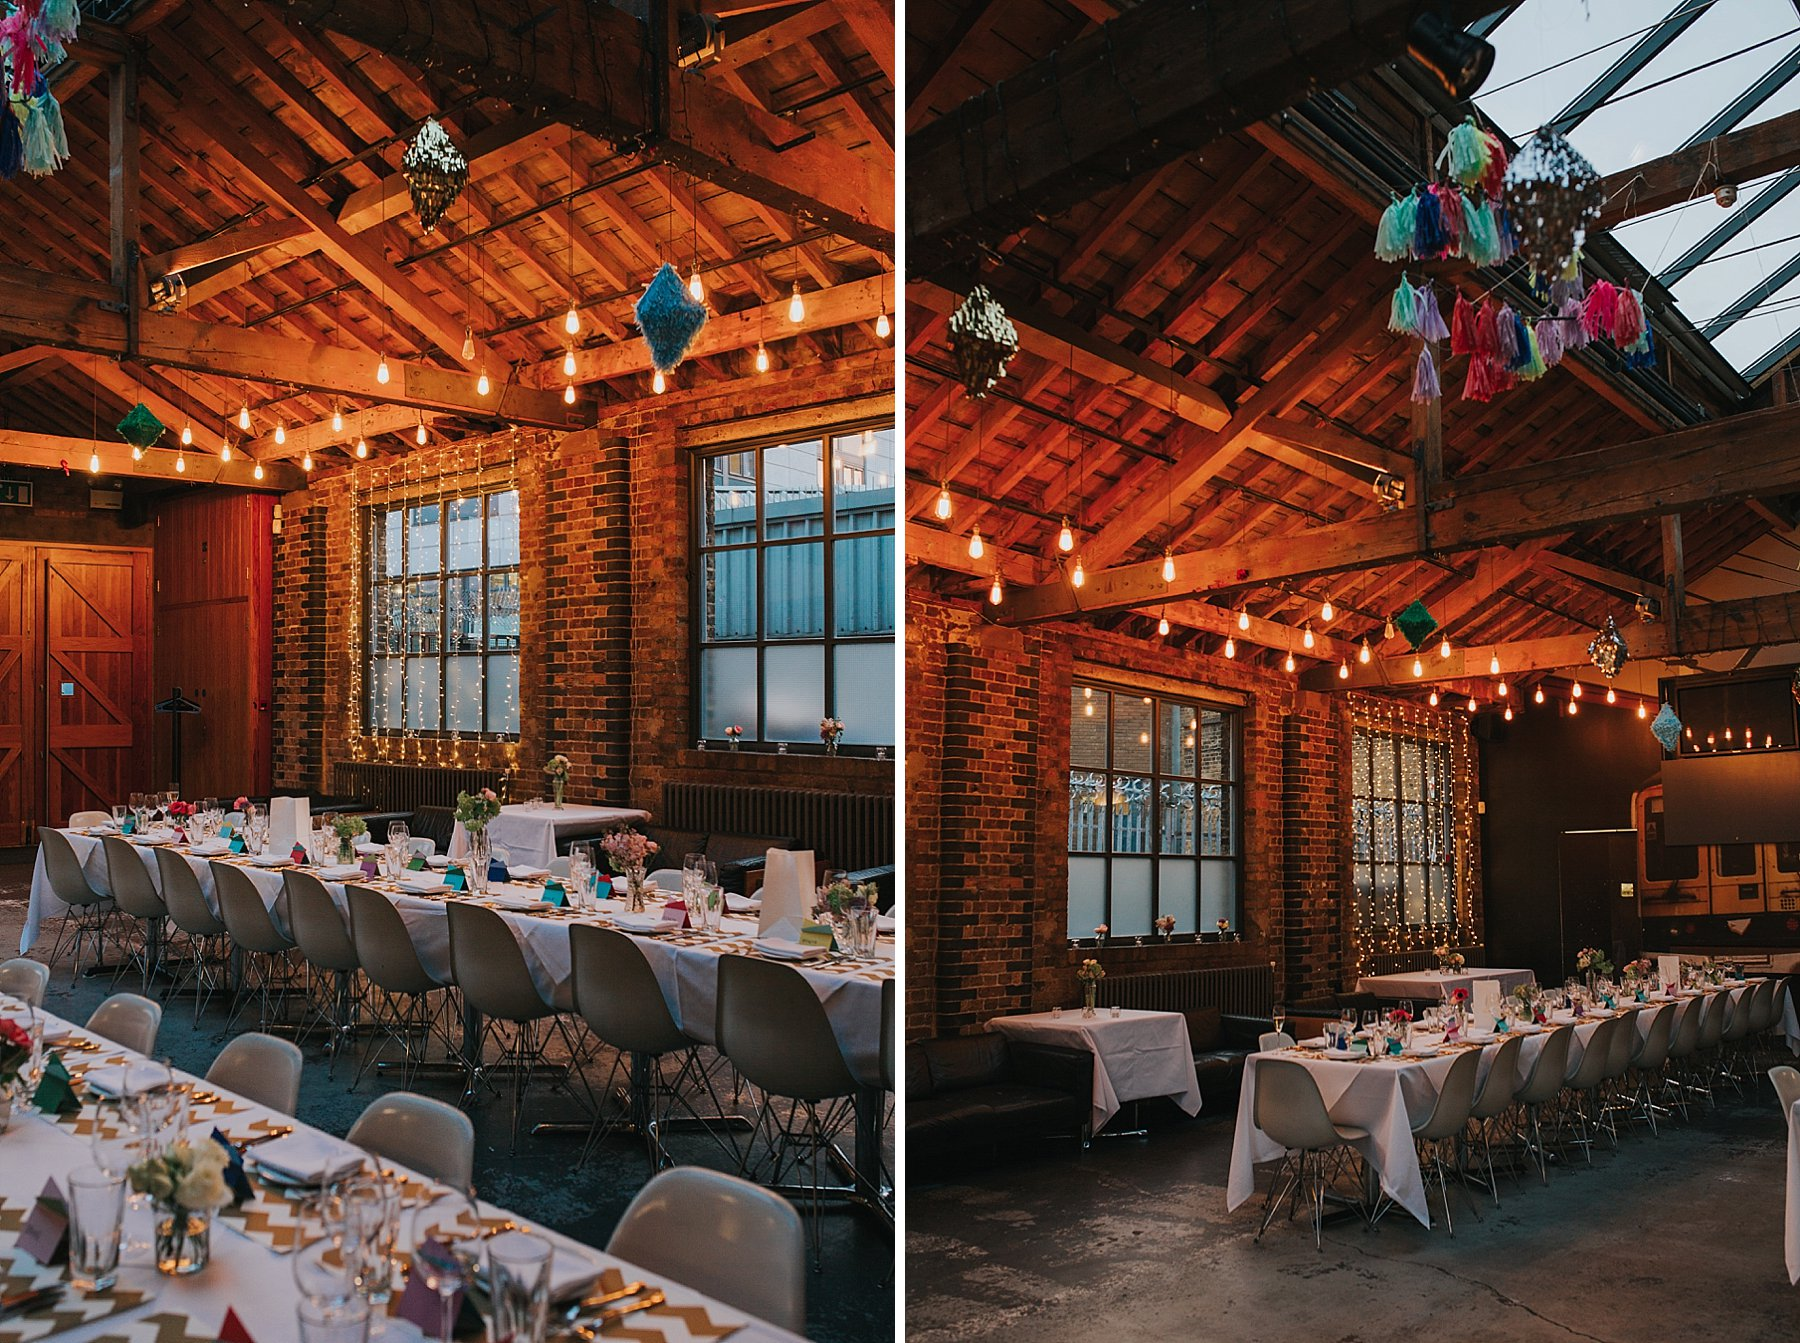 139-St Chads Place urban warehouse wedding party event space London.jpg